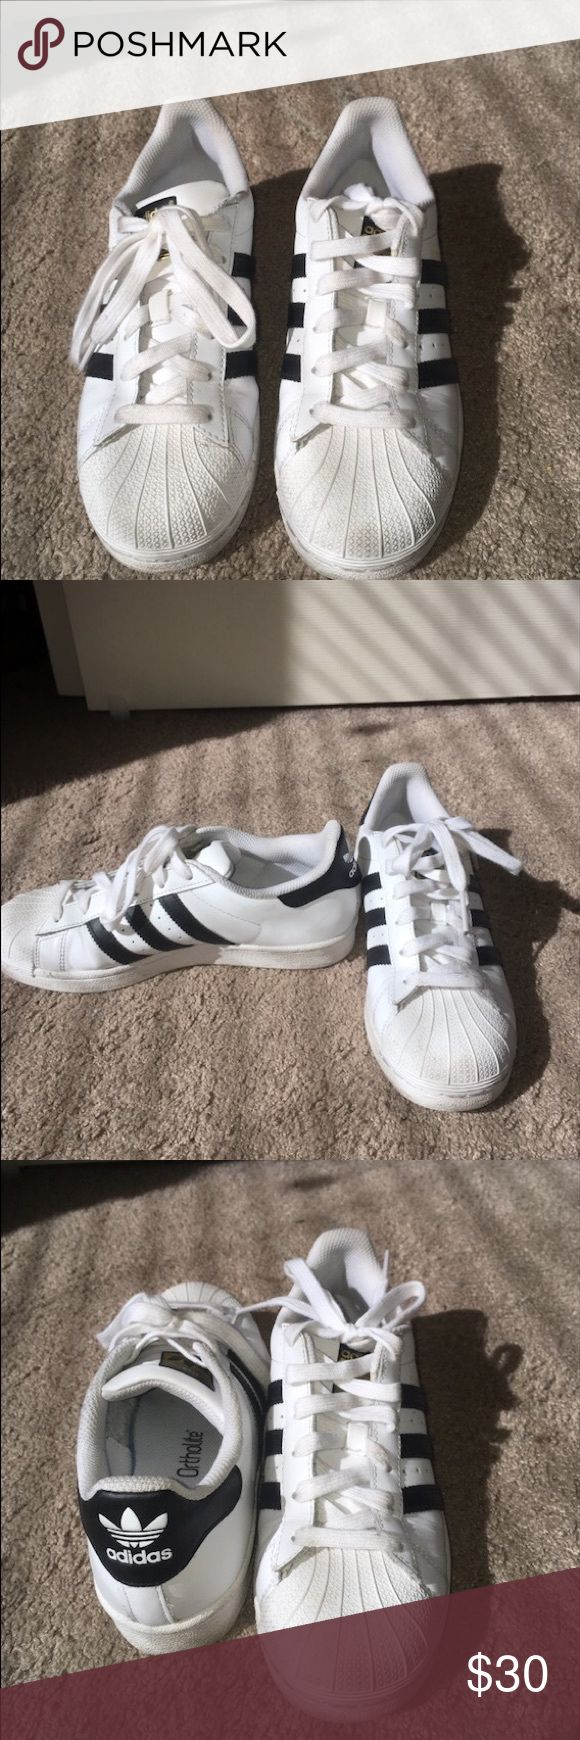 Adidas Superstars Black stripes on white shoes, classic style and popular. Adidas Shoes Sneakers